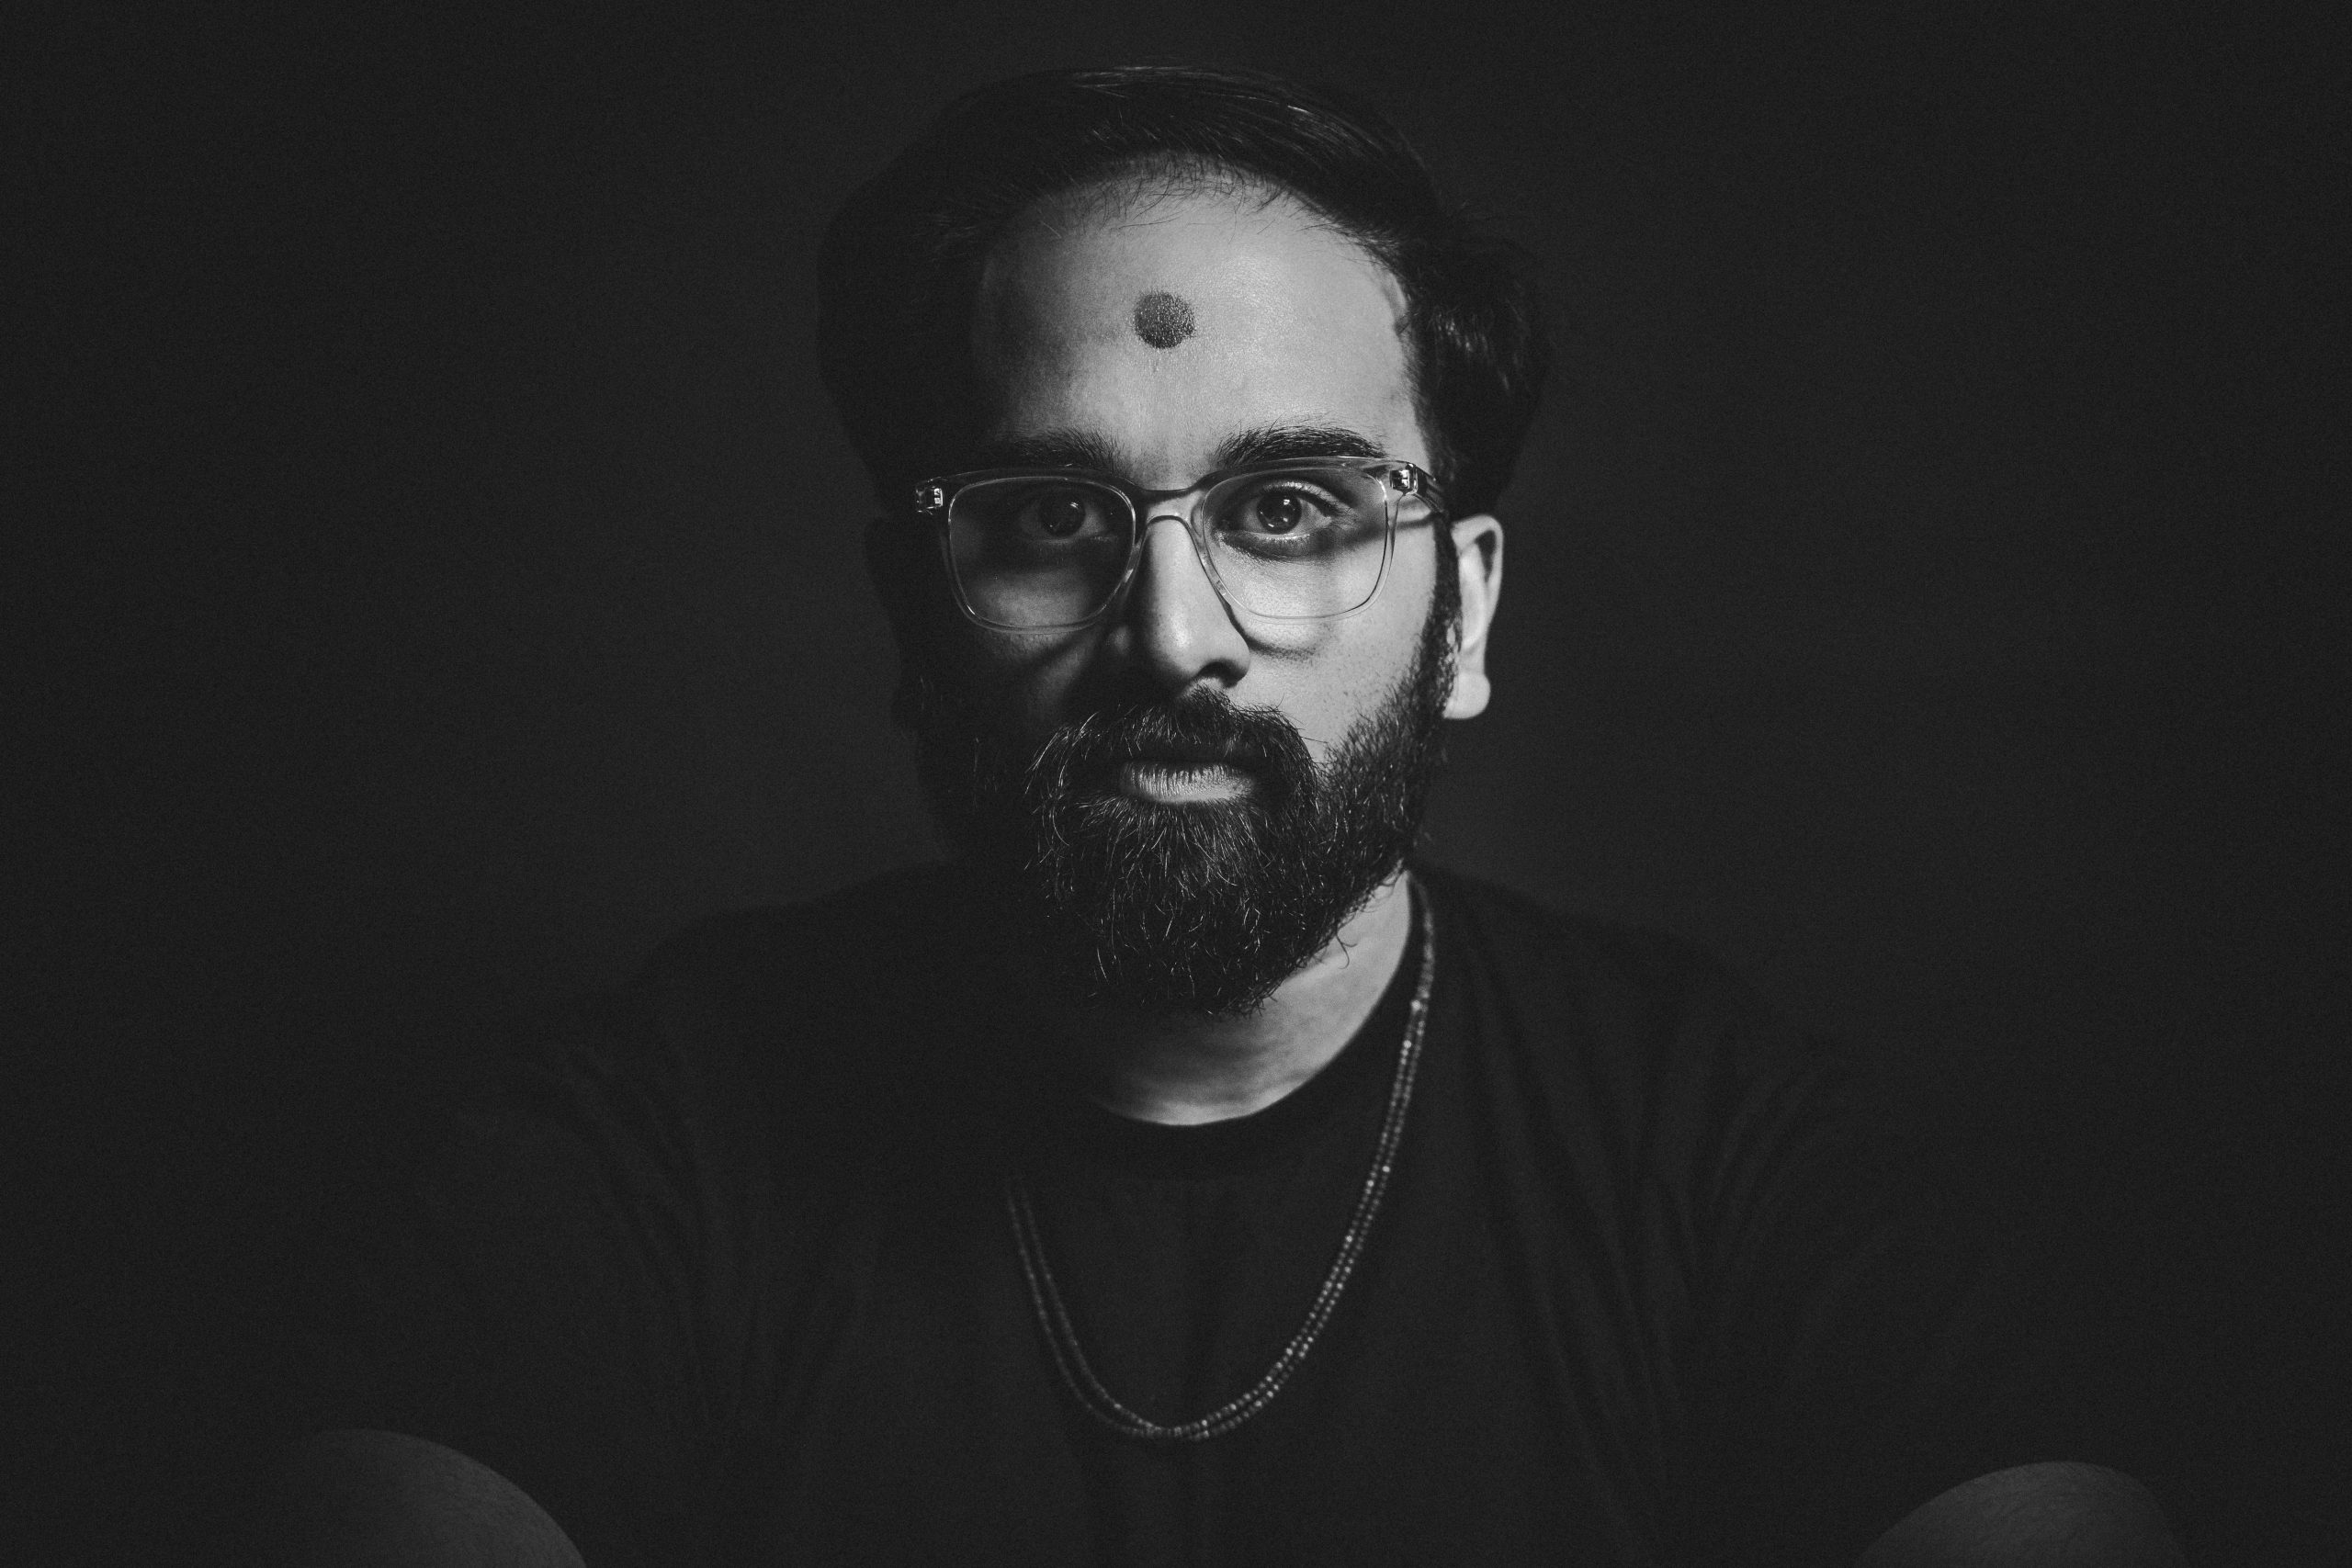 Hello, I'm <strong>Parth Patel</strong>, A Video Creator and Video Engineer Based in New York/New Jersey Area.